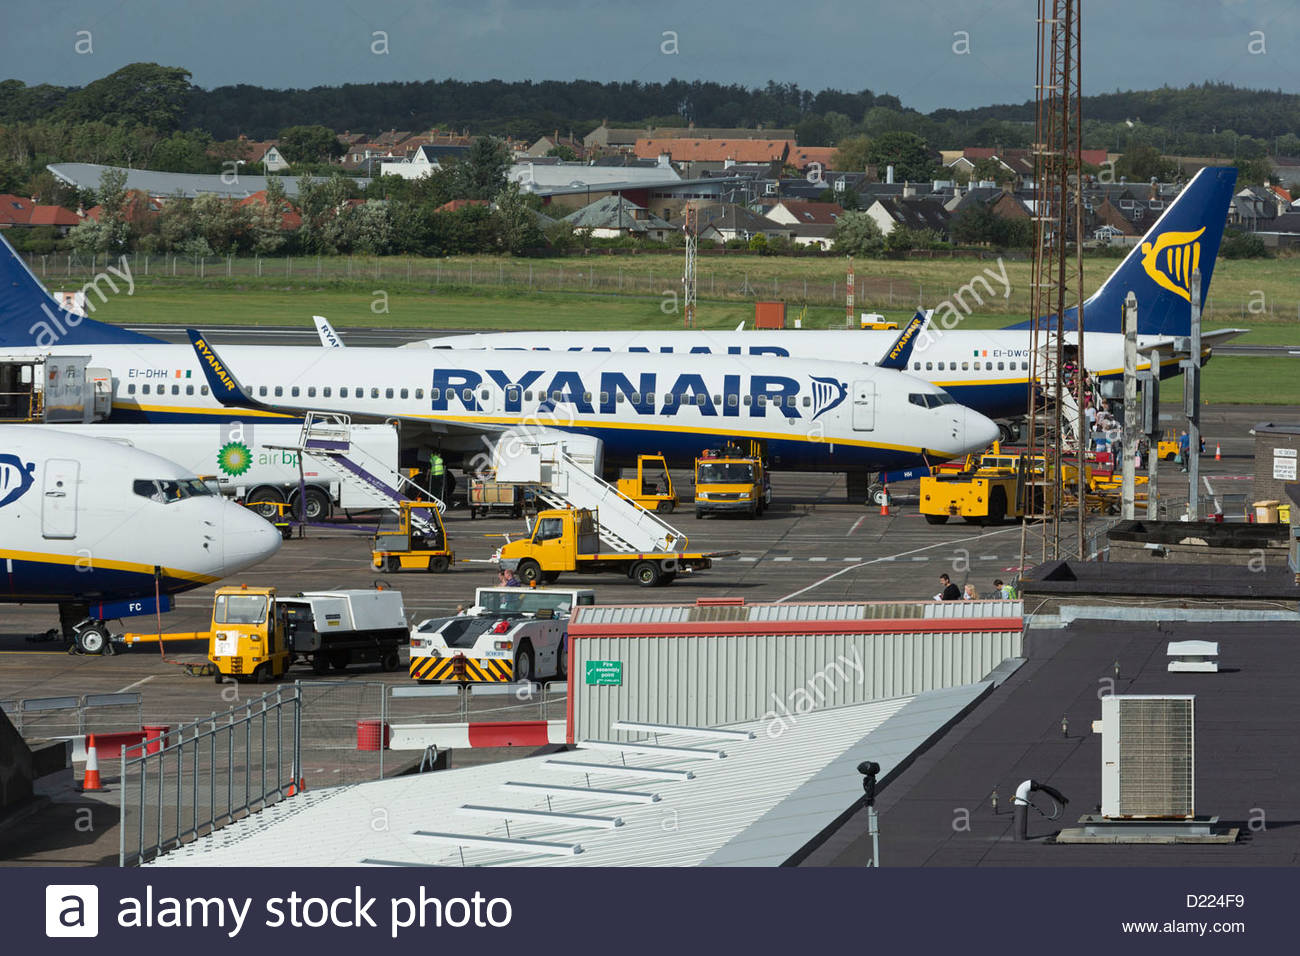 Ryanair aircraft at Glasgow Prestwick Airport, Prestwick, South Ayrshire. - Stock Image